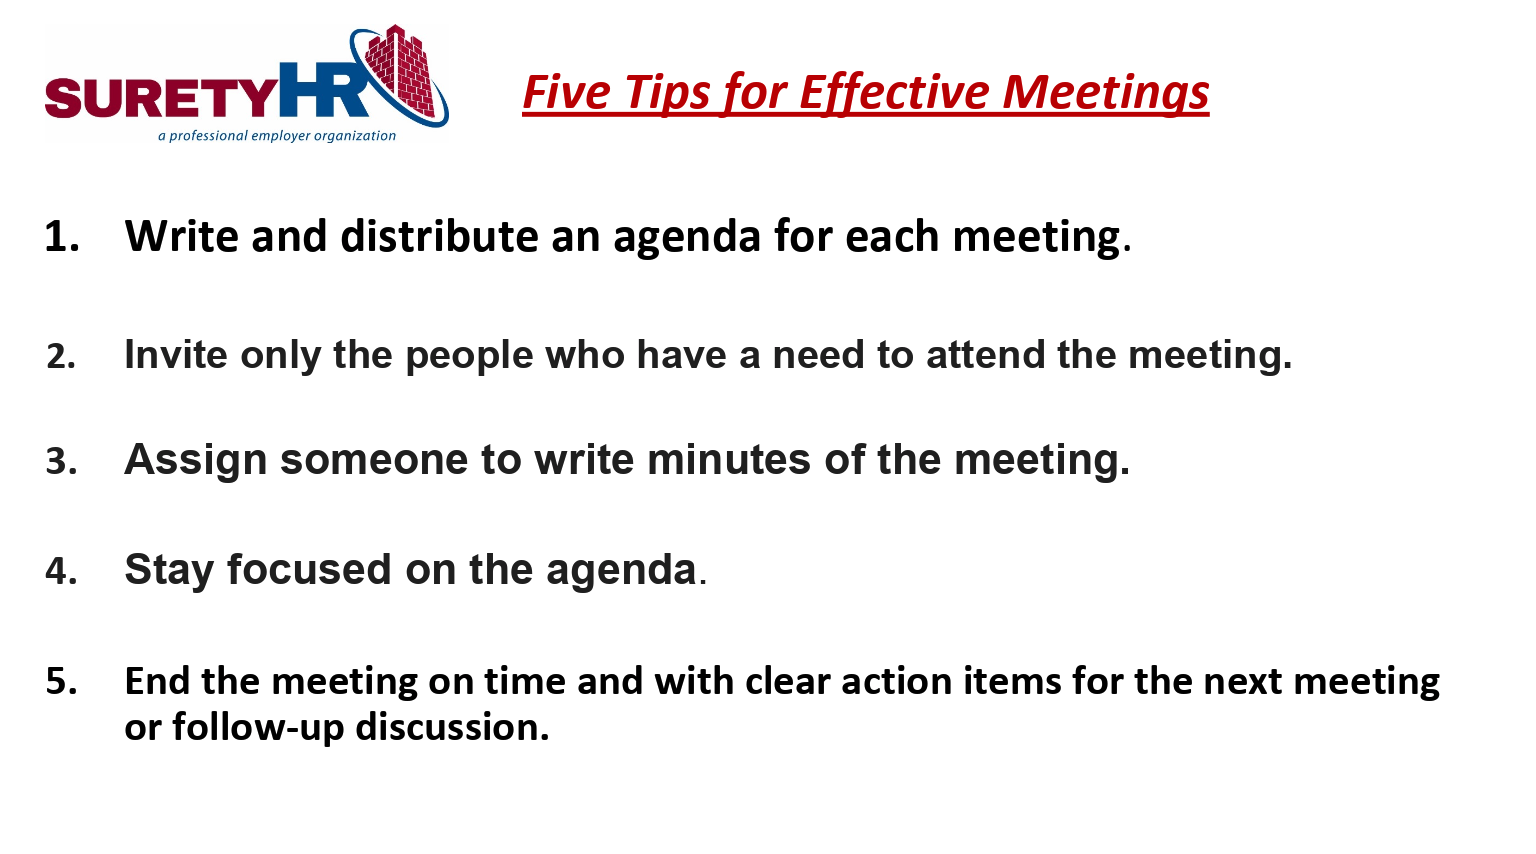 Five tips for an effective meeting | Surety HR | Cleveland, OH